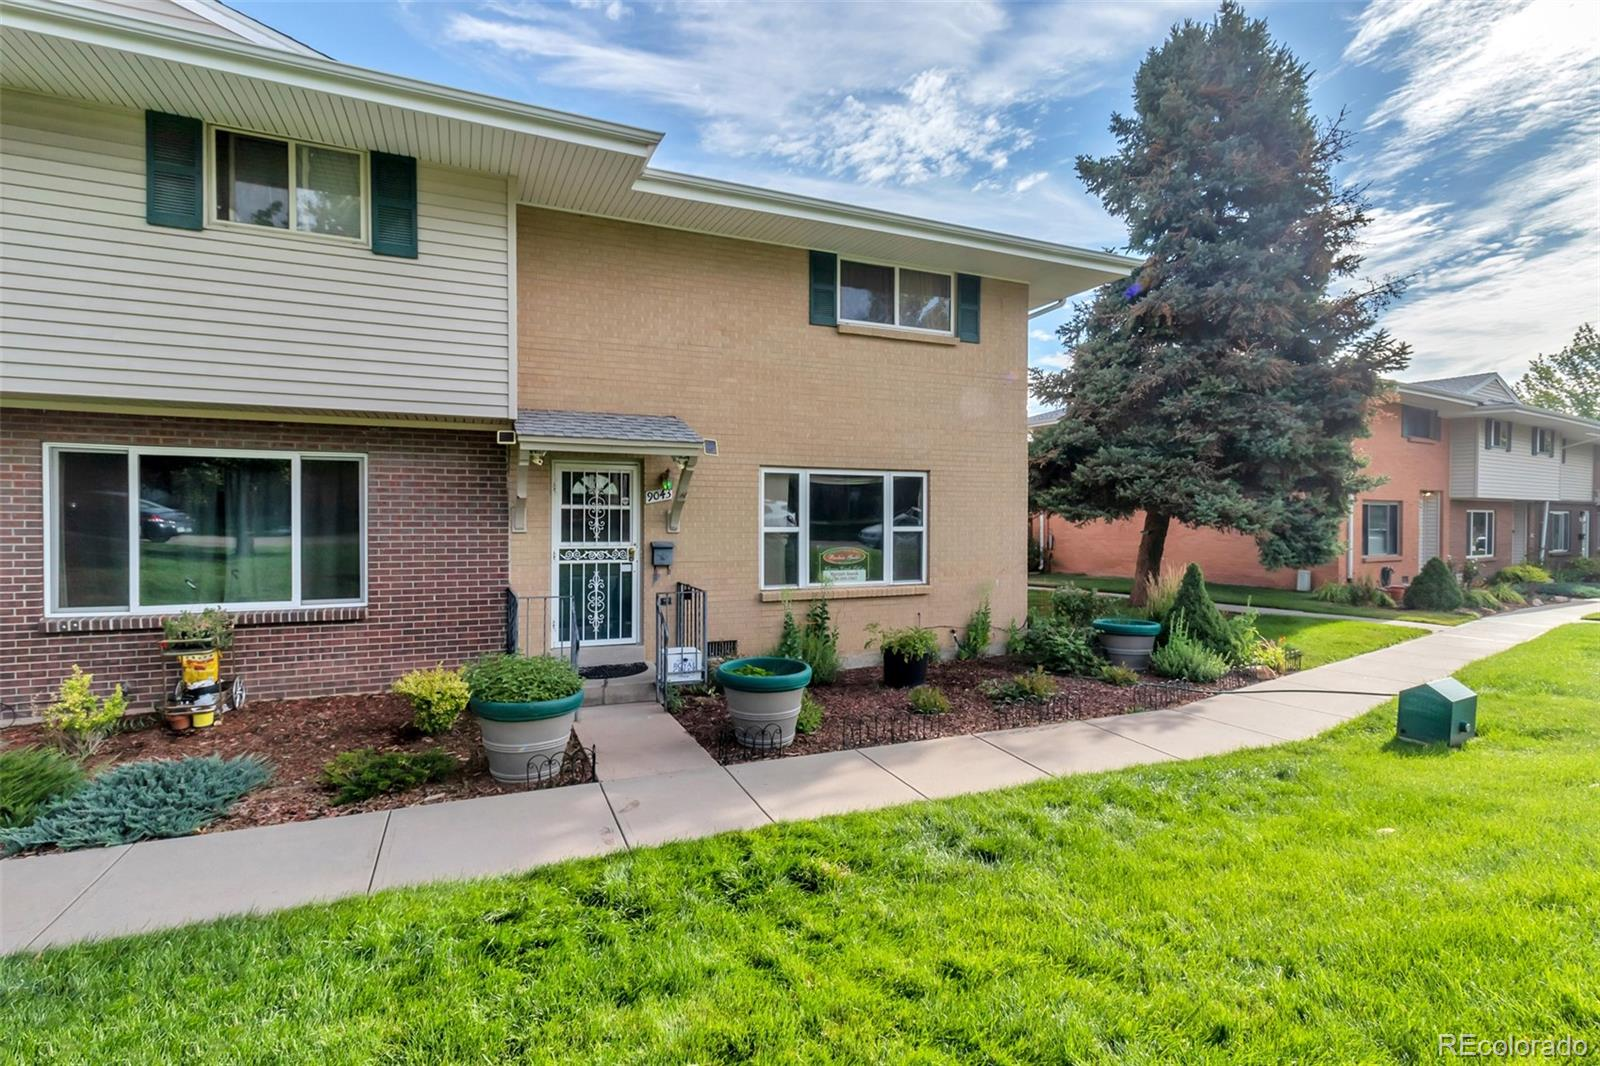 MLS# 1579821 - 24 - 9043 E Mansfield Avenue, Denver, CO 80237